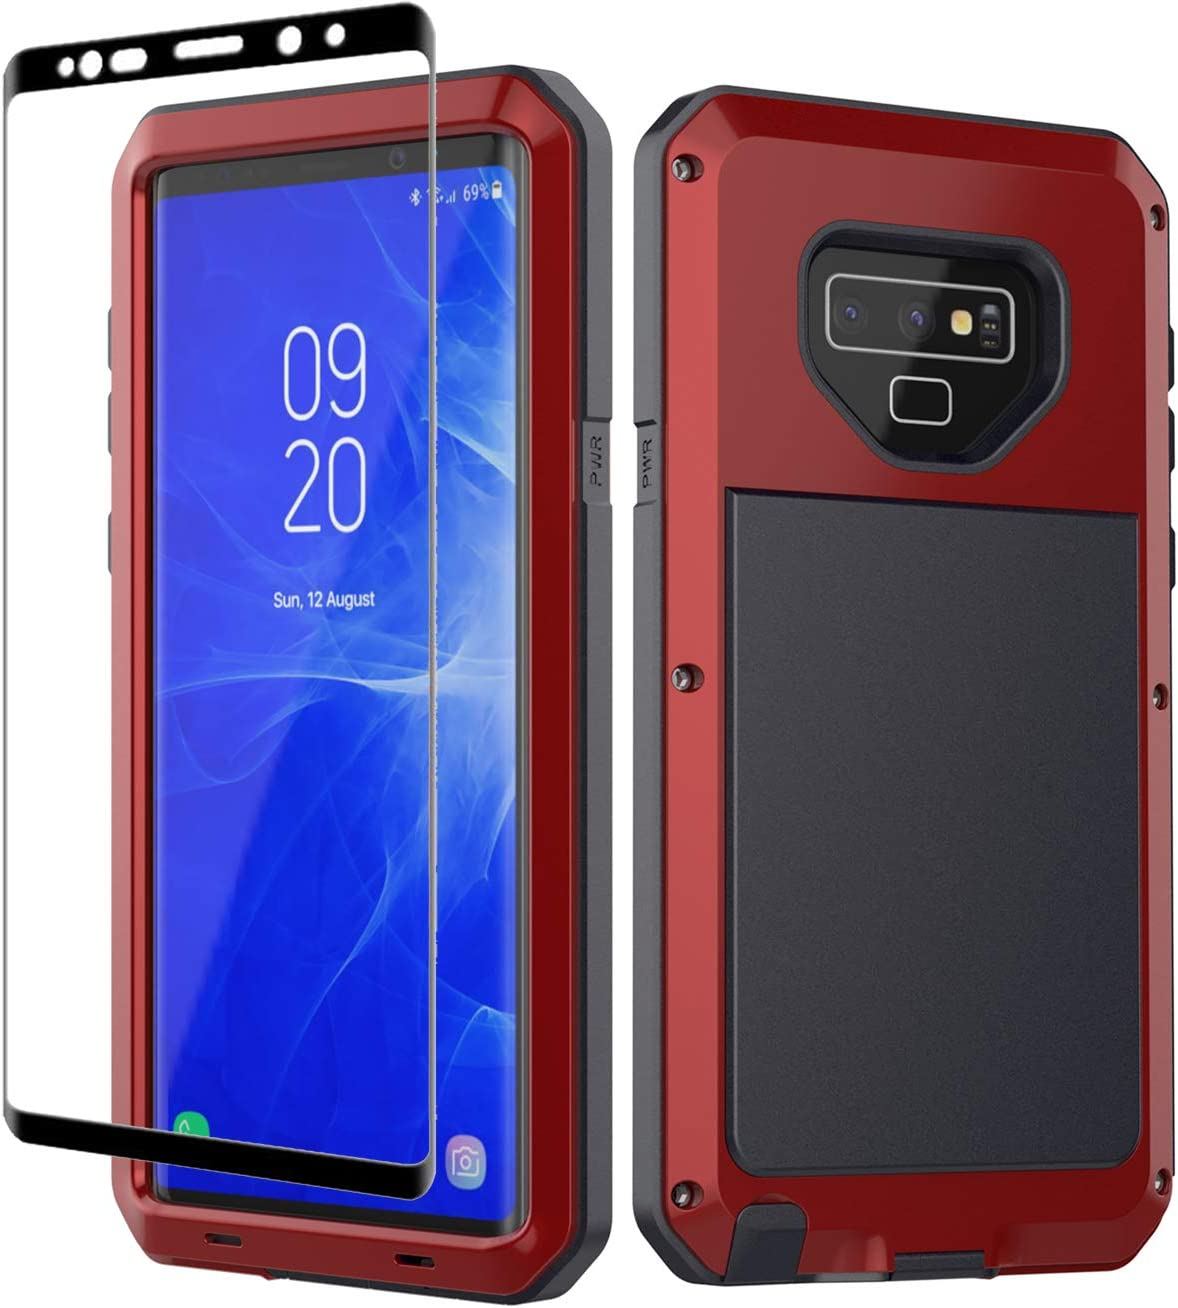 Galaxy Note 9 Case, Note 9 Heavy Duty Shockproof Hybrid Metal and Silicone High Impact Rugged Case and Tempered Glass Screen Protector [Full Screen Coverage] for Samsung Galaxy Note 9 (Red)